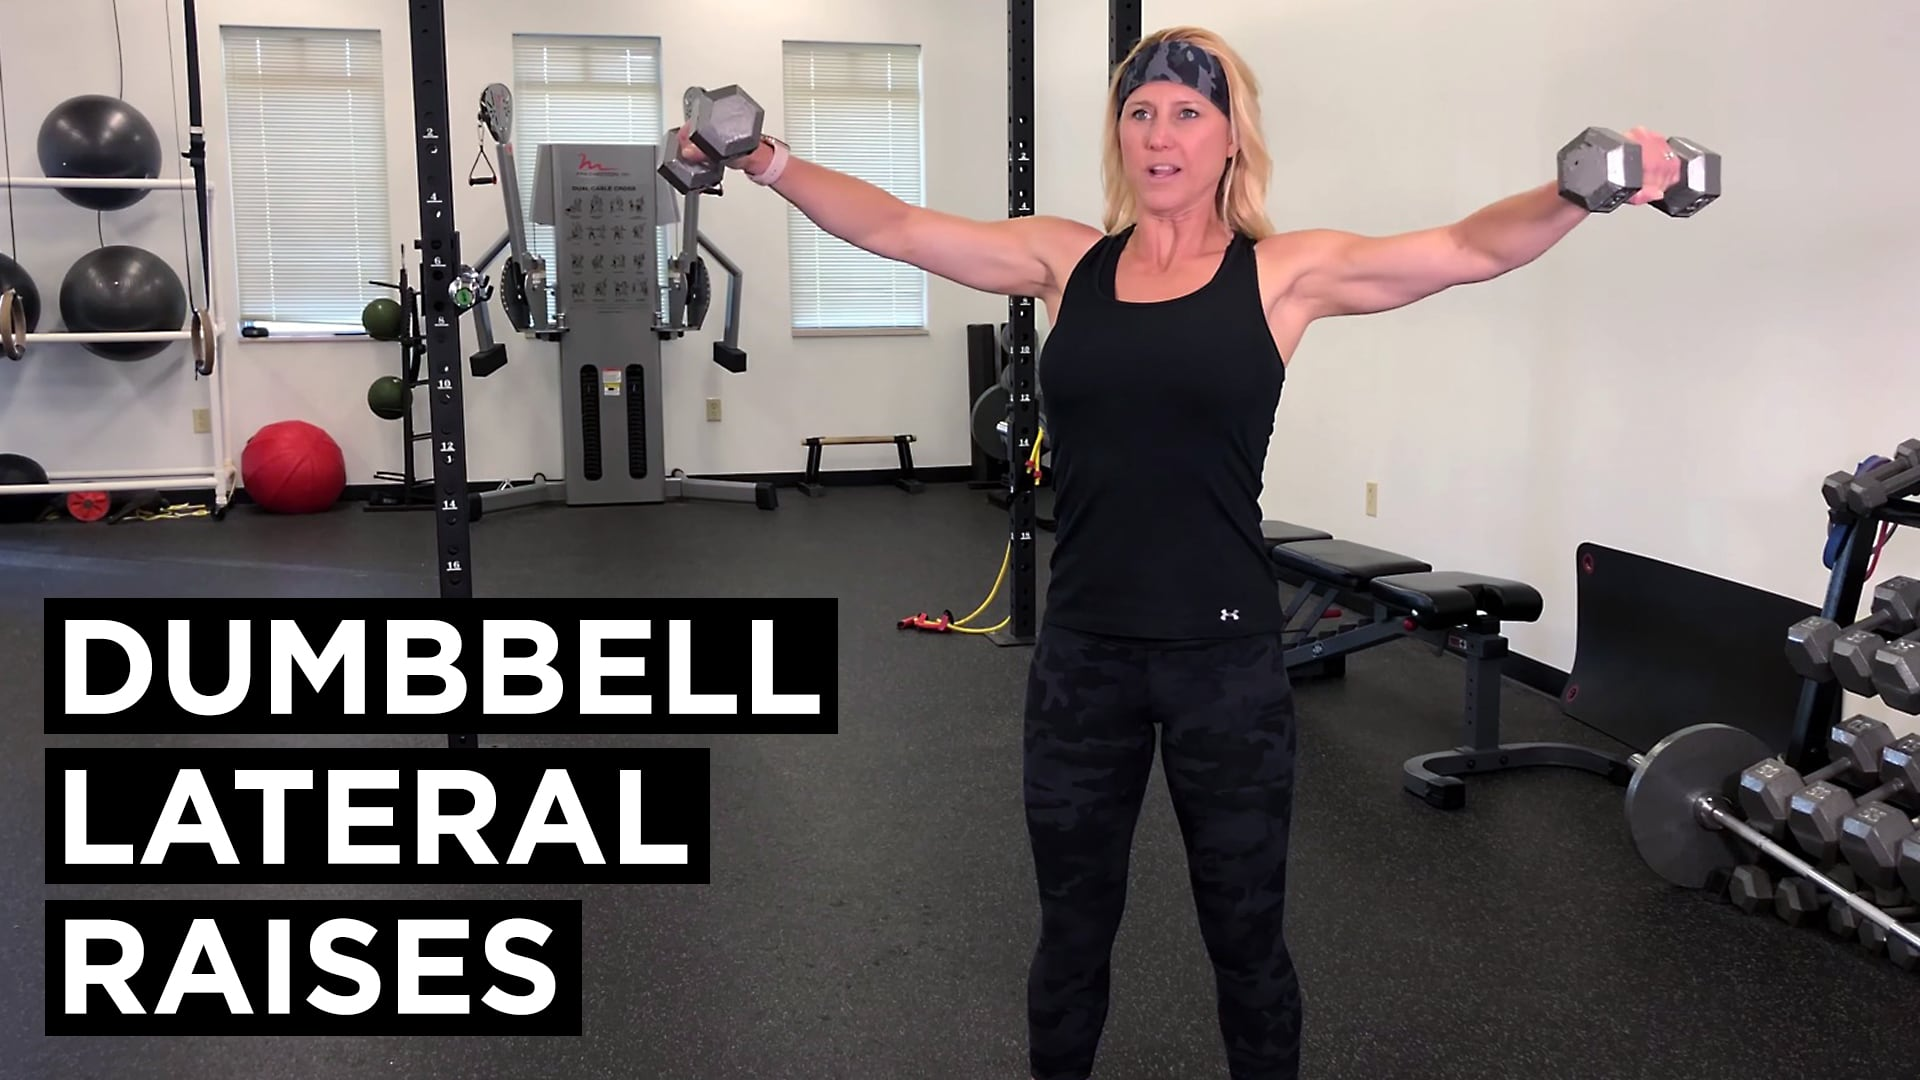 Dumbell Lateral Raises